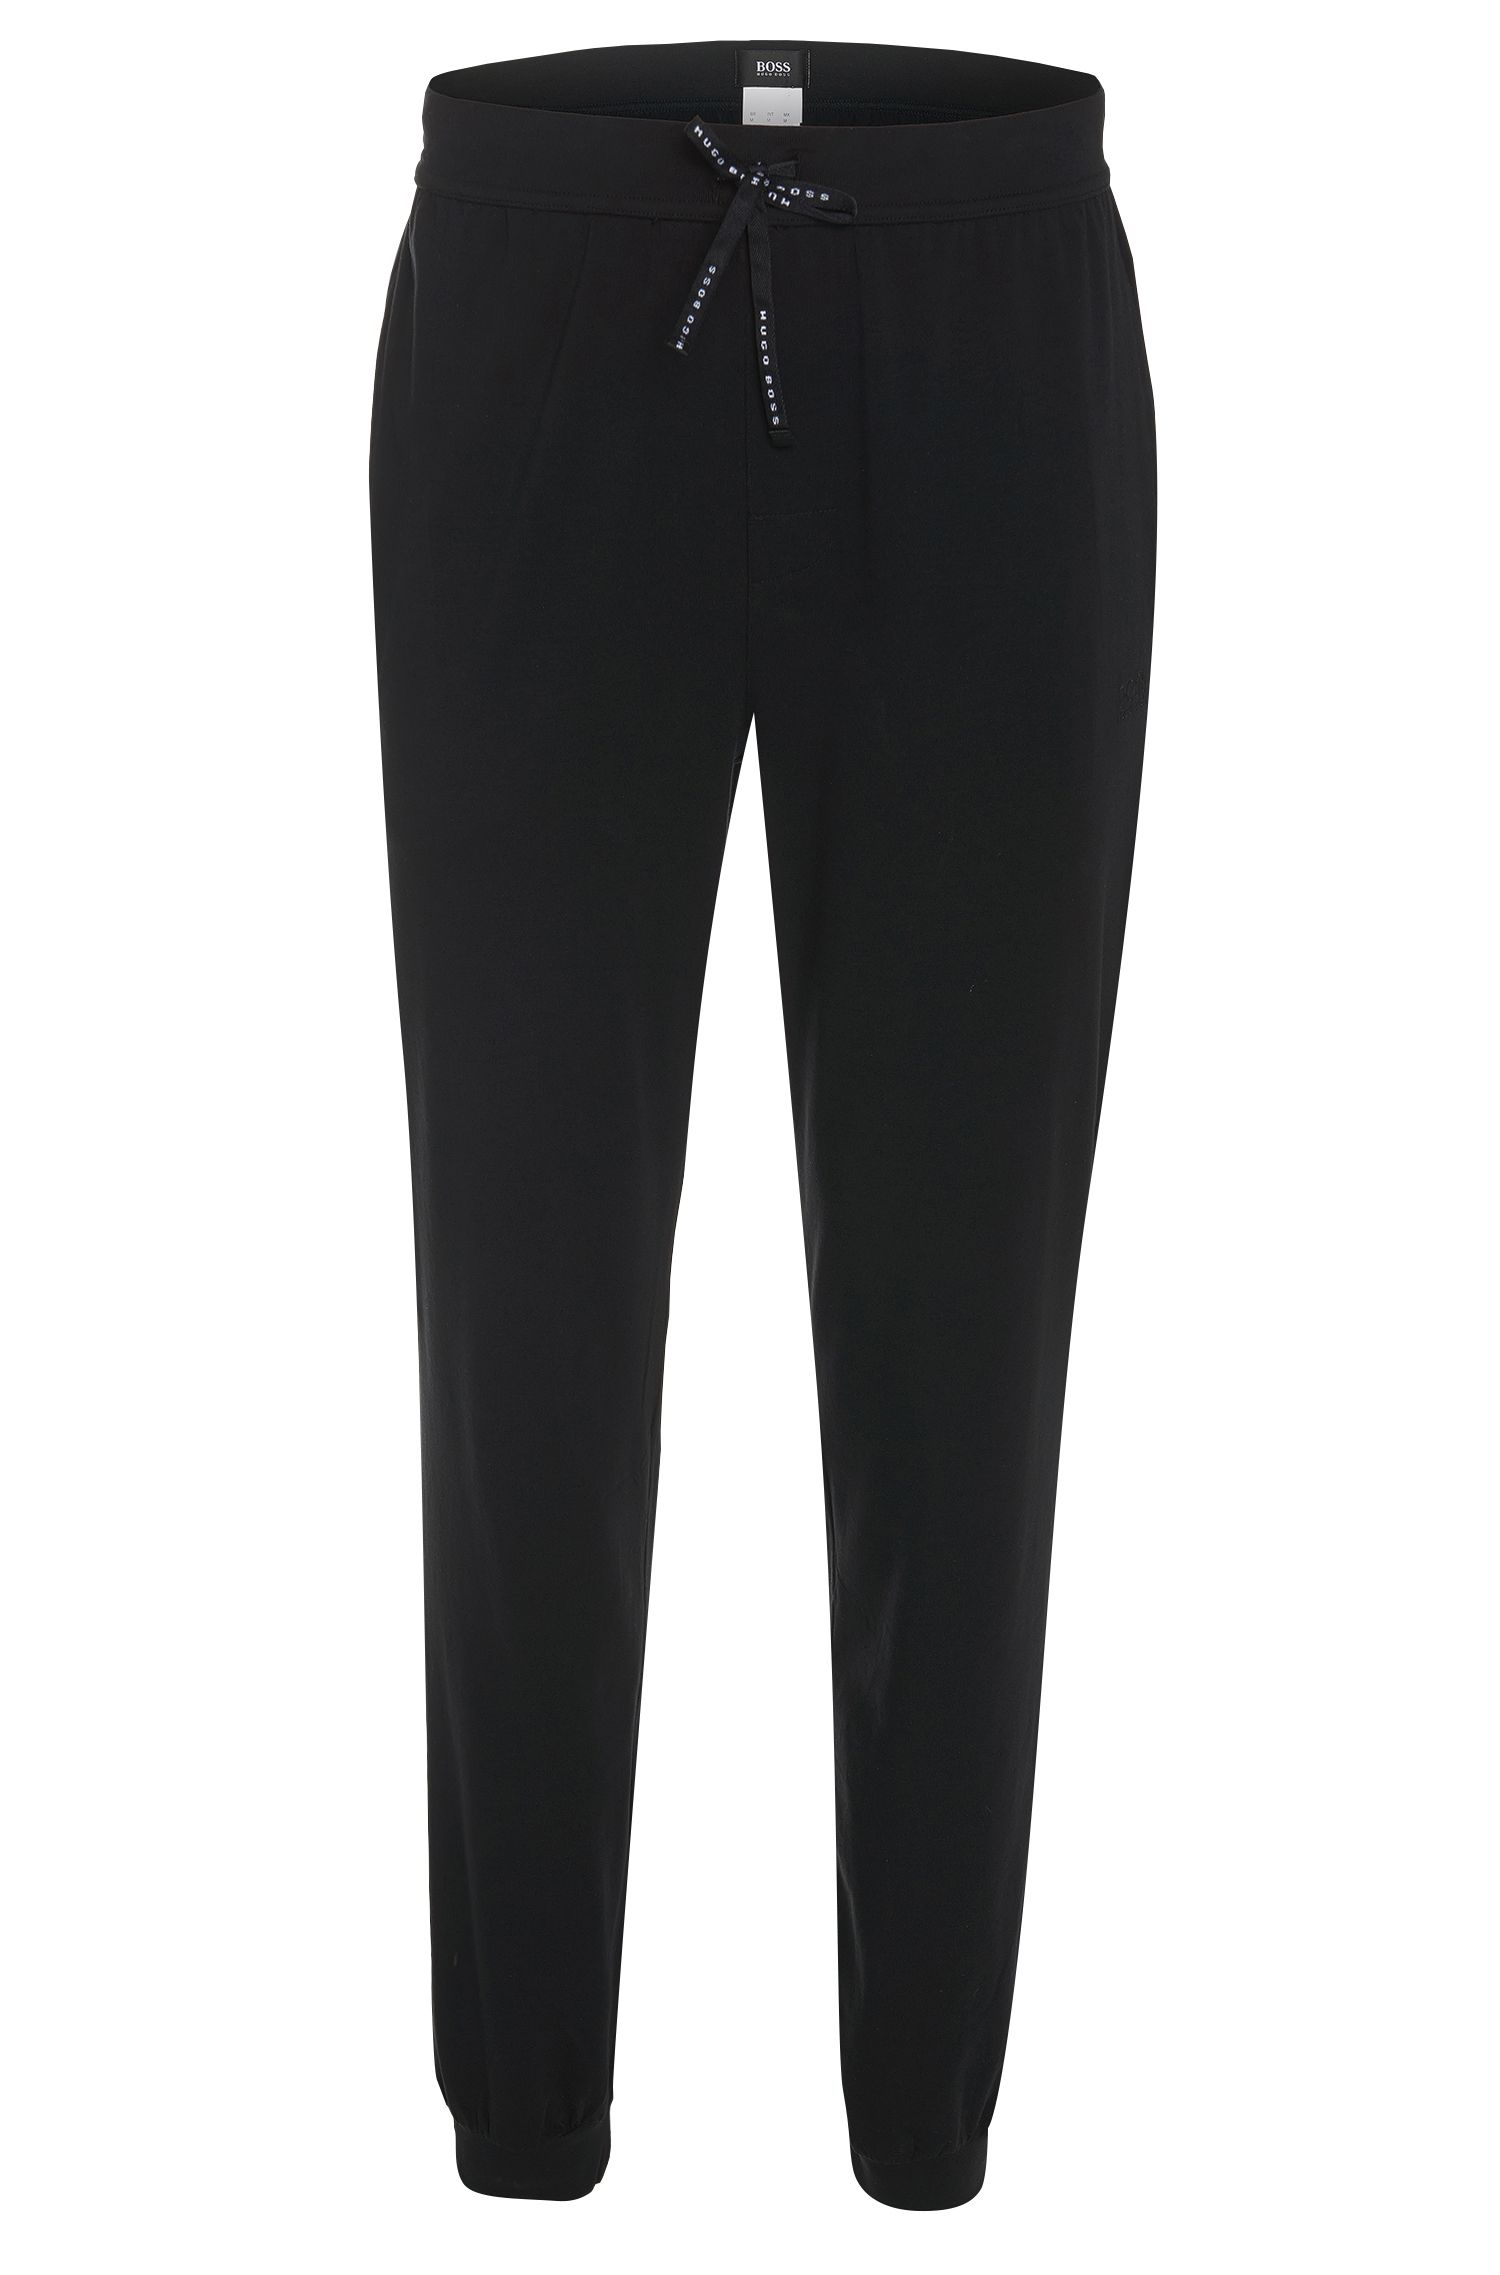 Unifarbene Jogginghose aus Stretch-Baumwolle: 'Long Pant CW Cuffs'